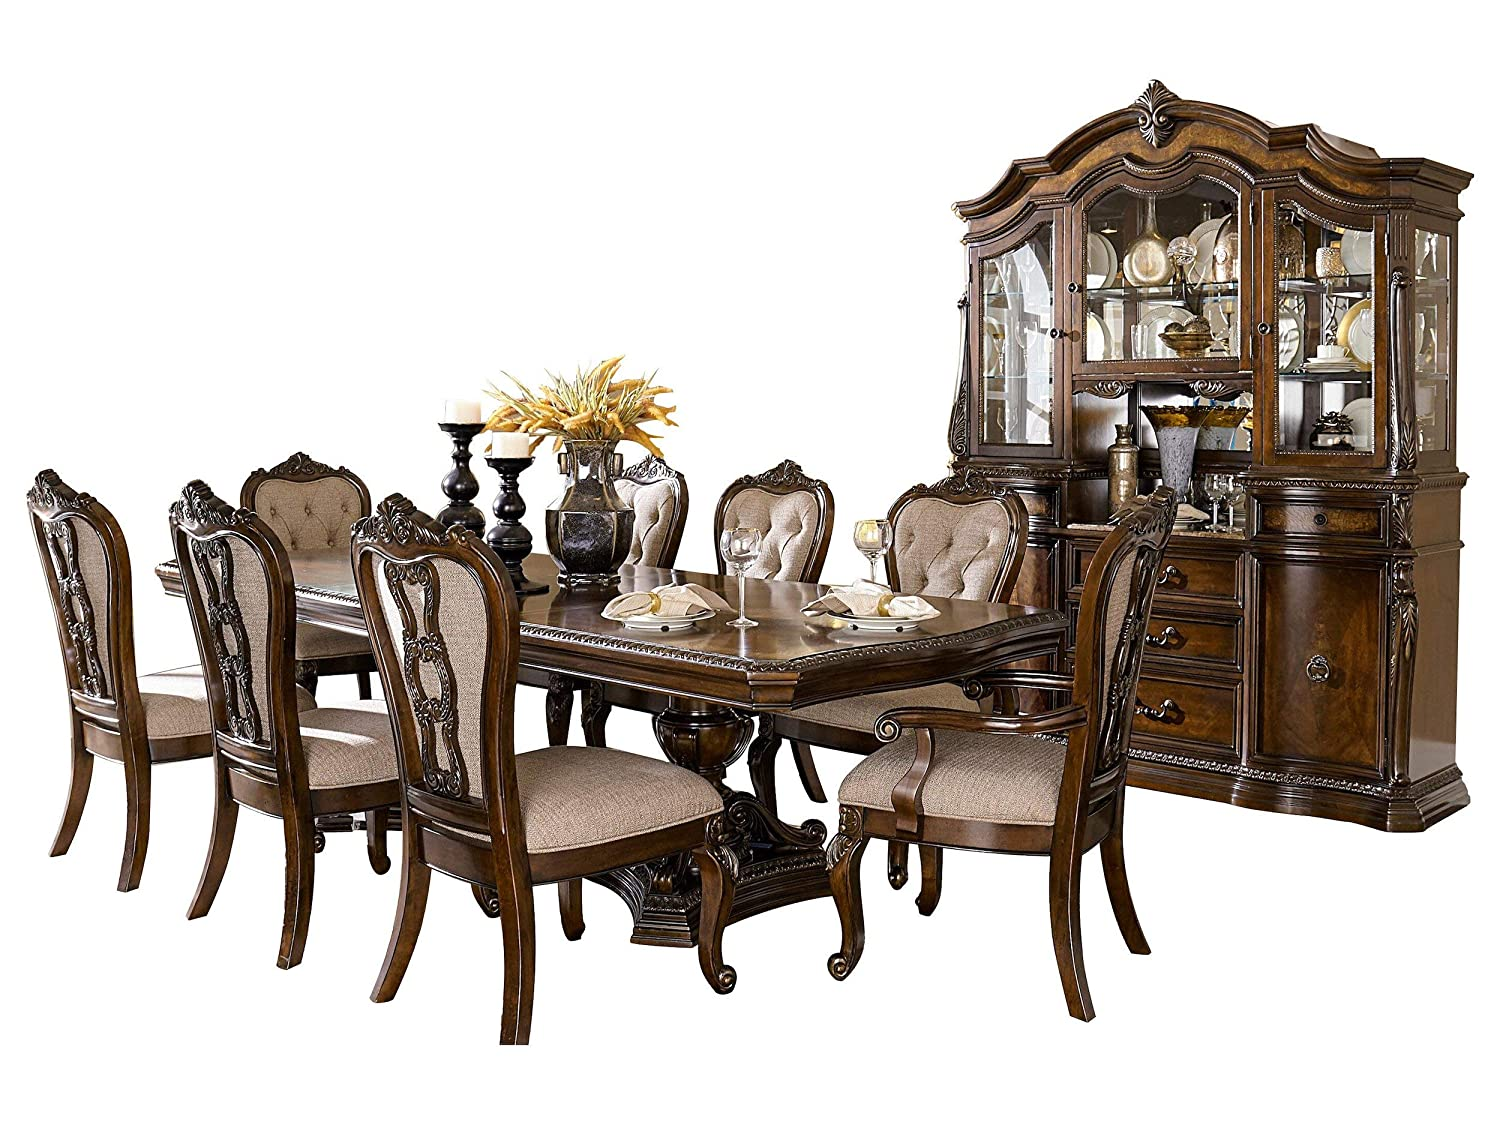 Bautistia Italian Country 10PC Dining Set Double Pedestal Table, 2 Arm, 6 Side Chair, Buffet & Hutch in Cherry